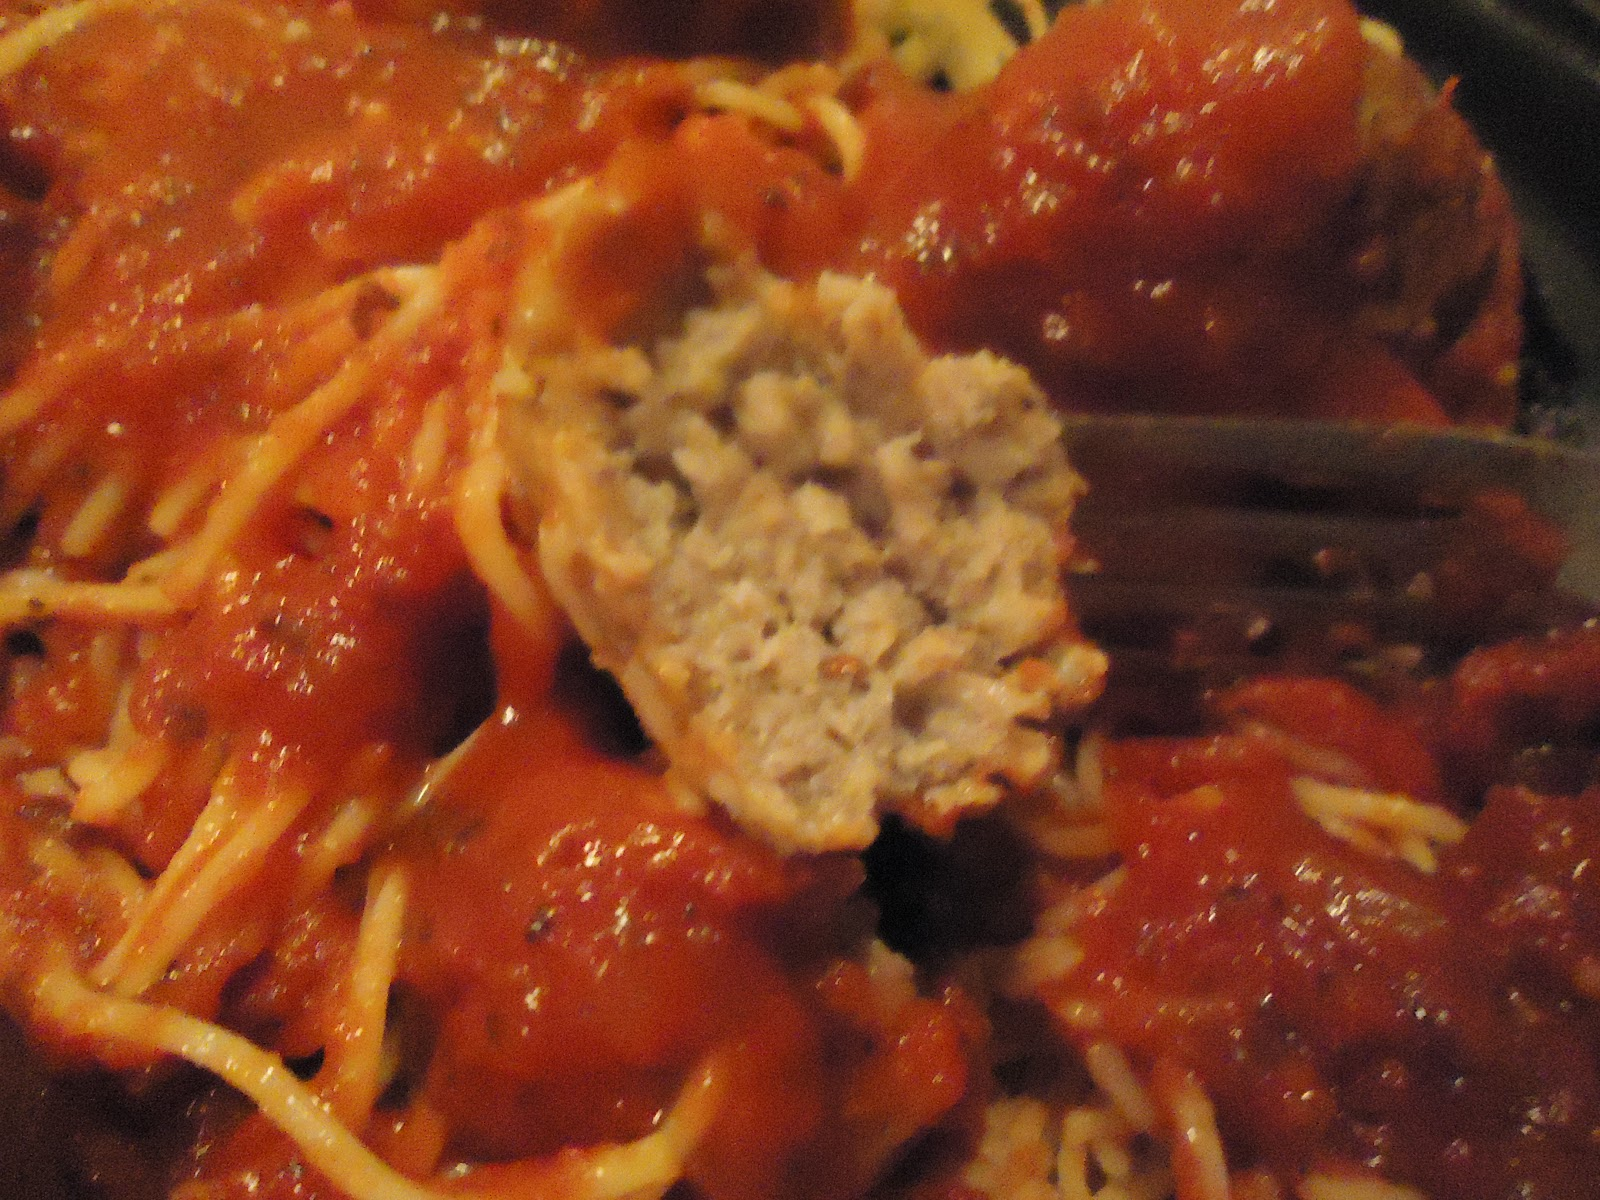 The meatballs have a little kick to them, which makes them even better ...